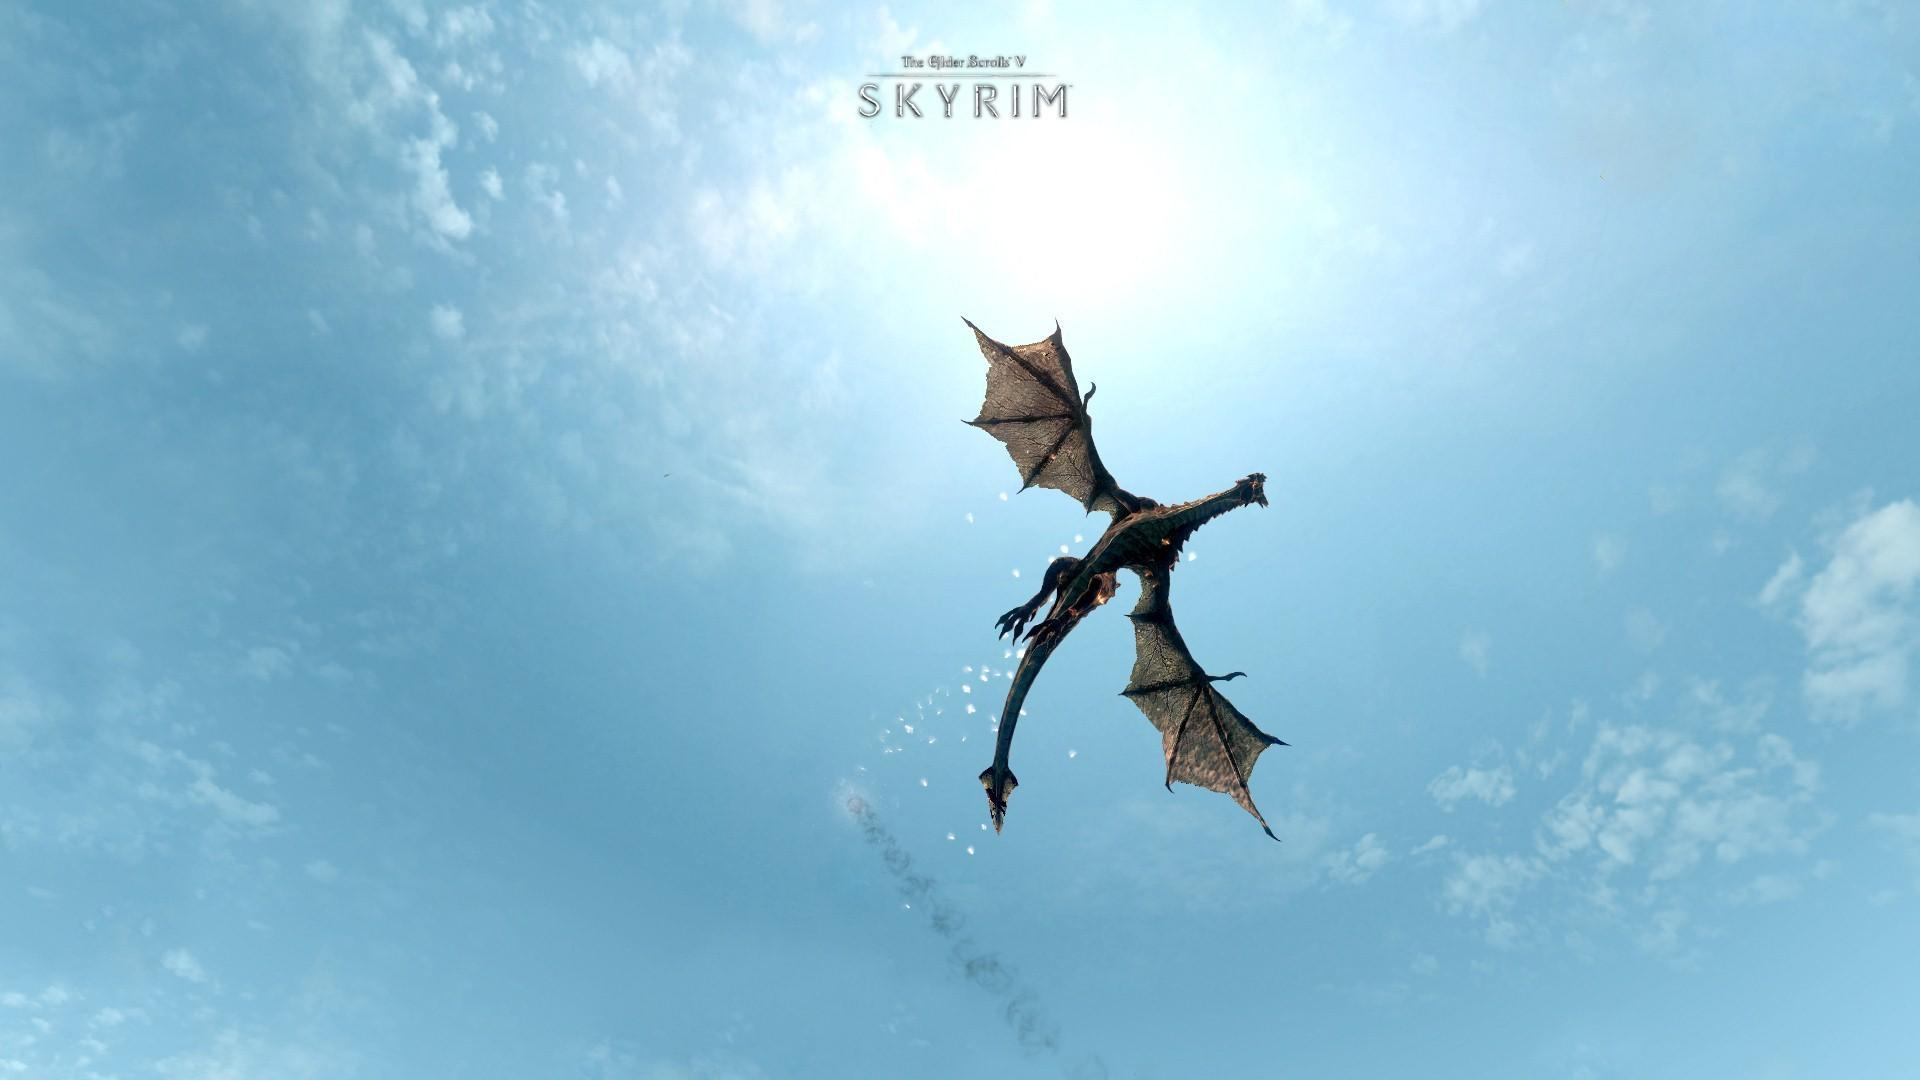 Wallpaper The Elder Scrolls V Skyrim flying dragon 187 The 1920x1080